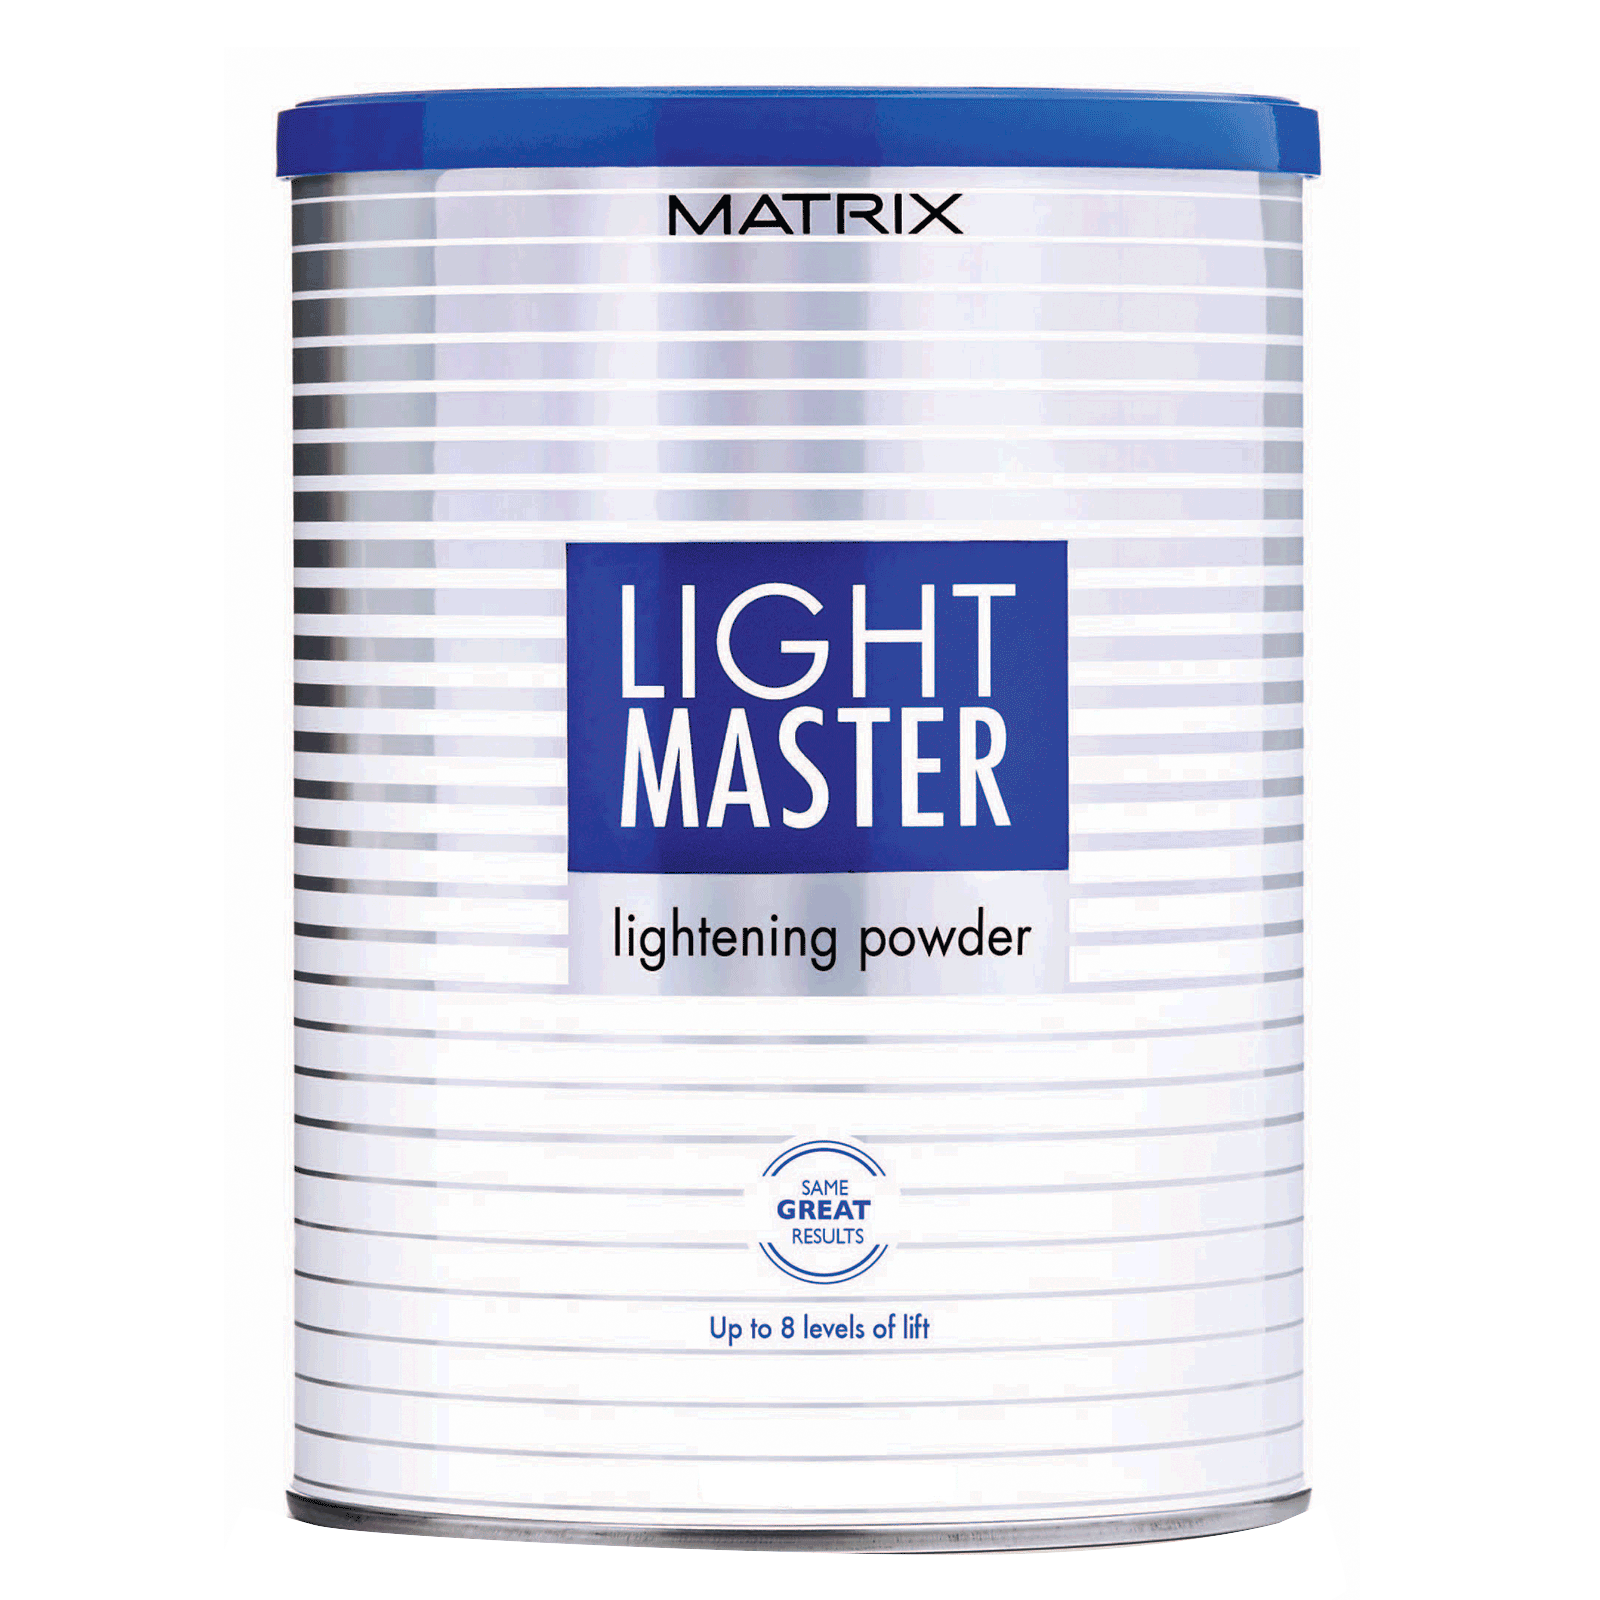 Lightmaster Lightening Powder